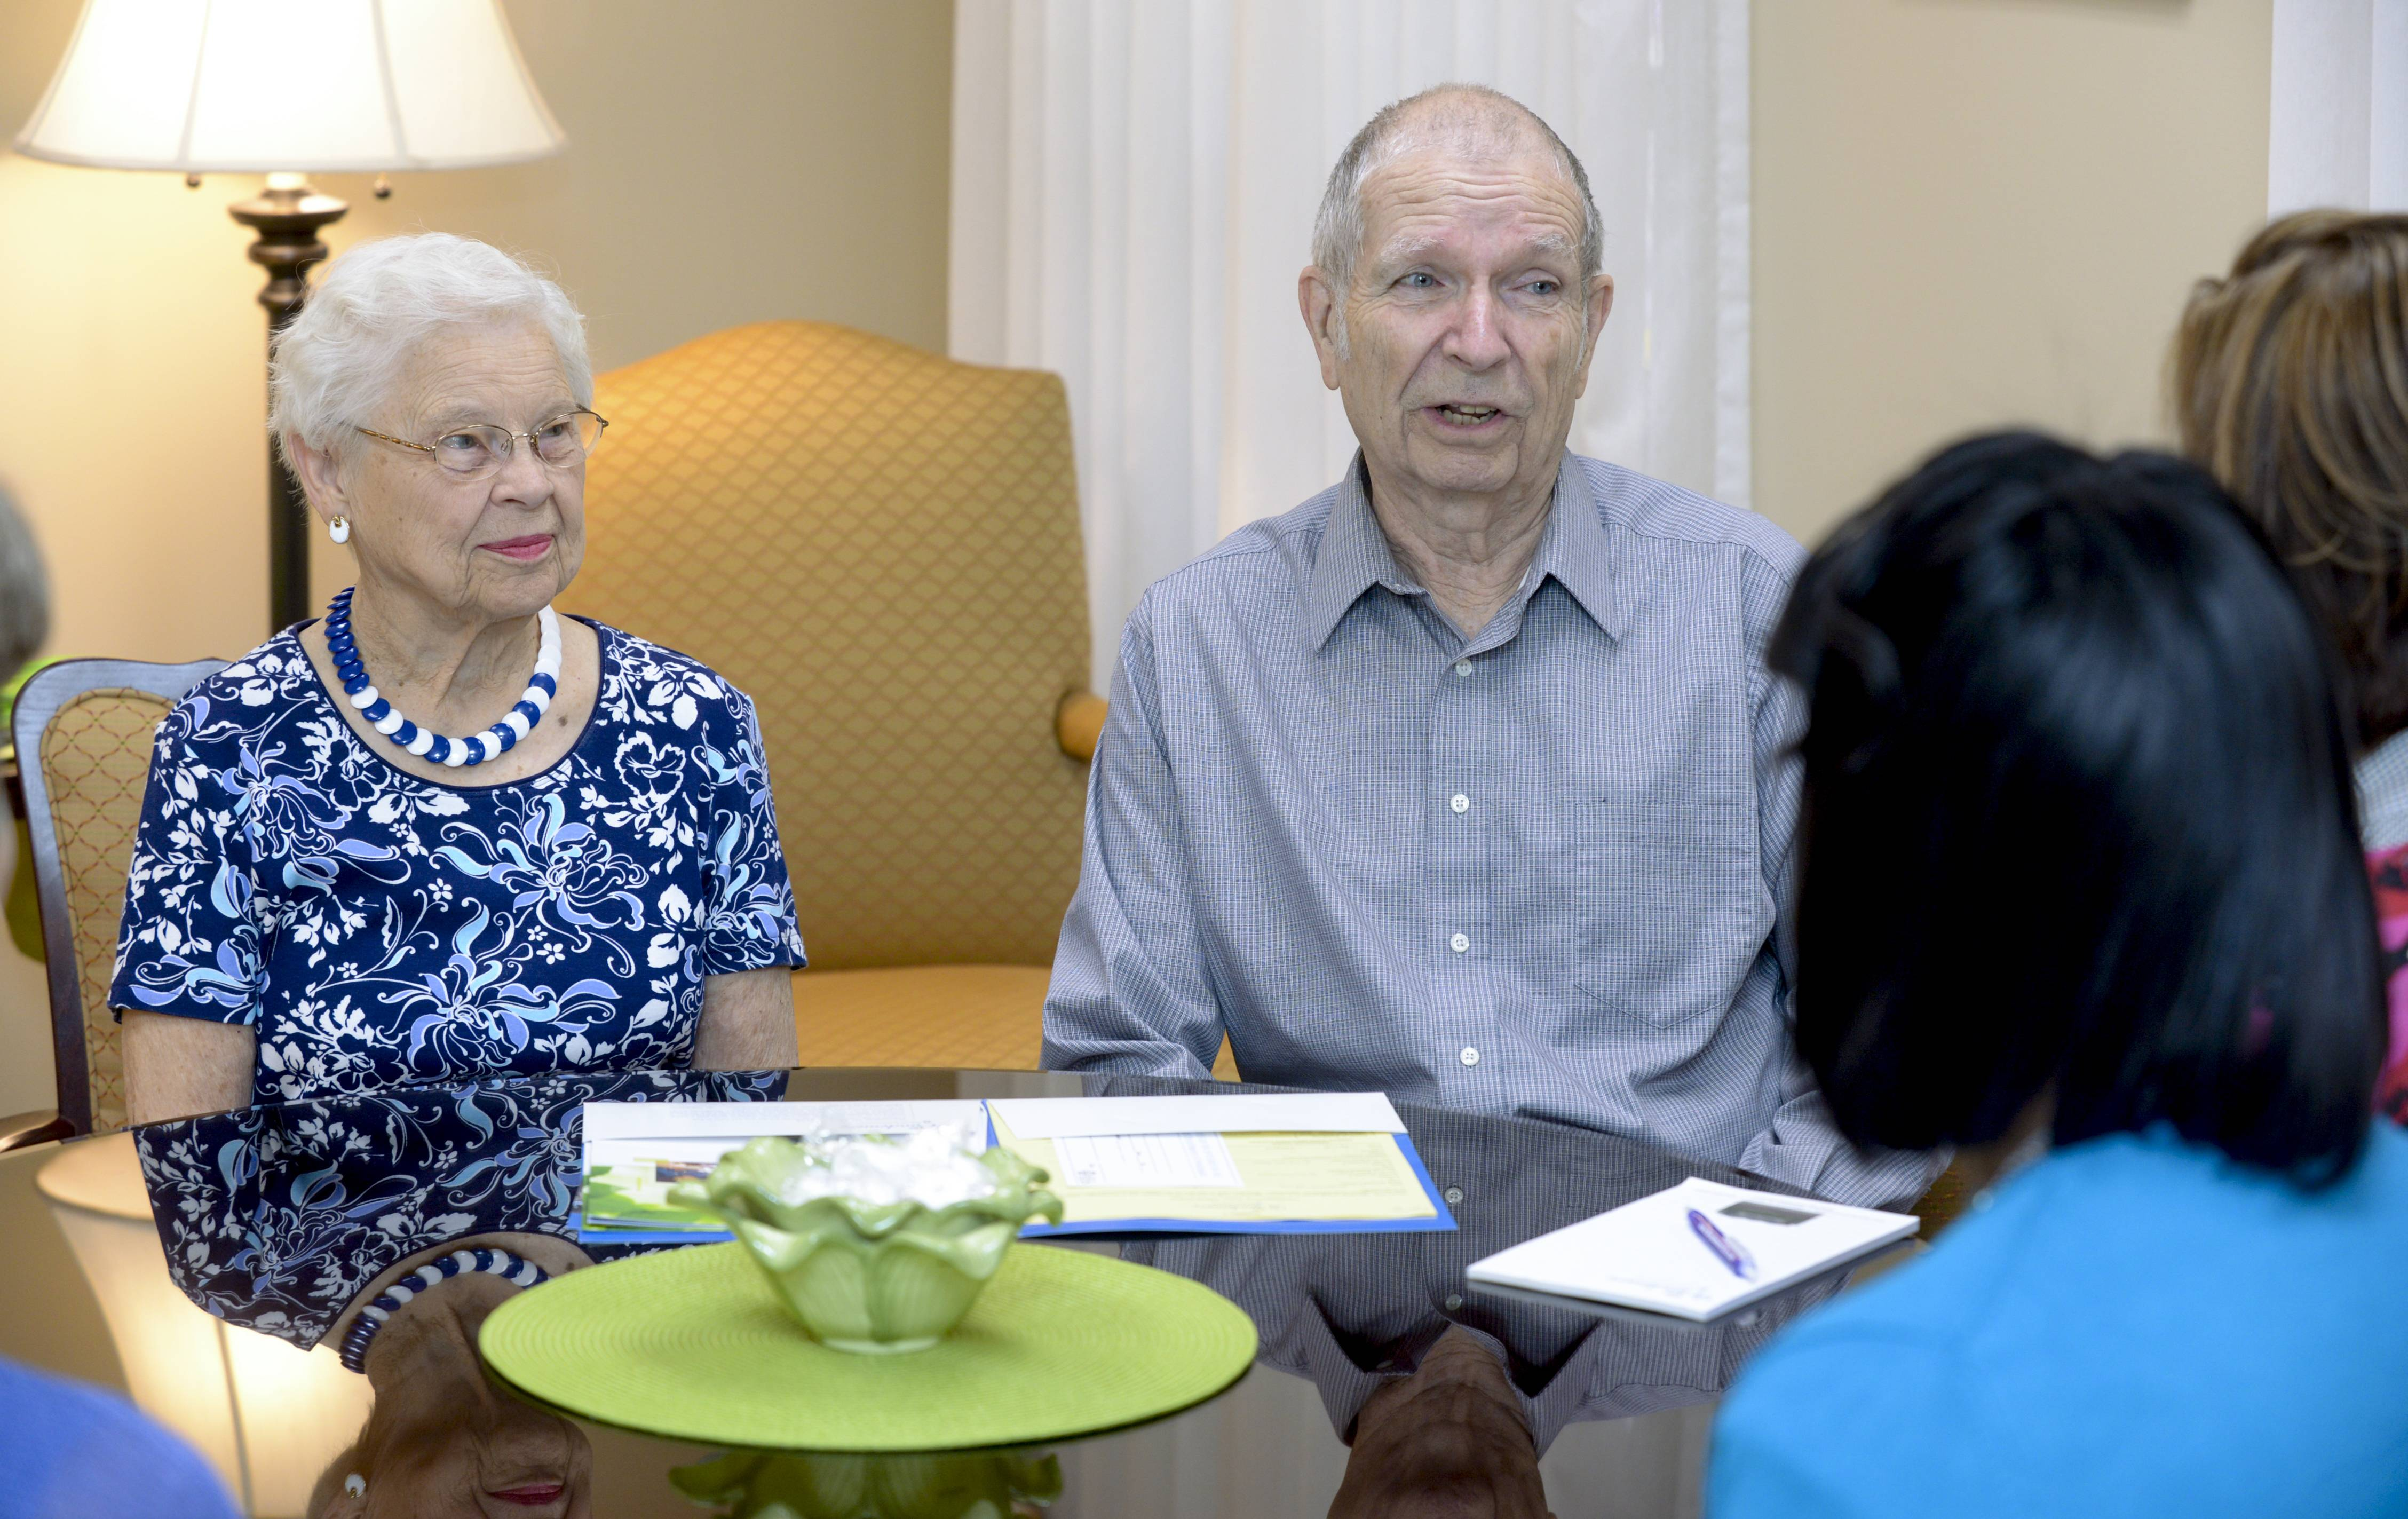 Lois and Don Fischer stay active by working on committees at their retirement community, Wyndemere, in Wheaton.